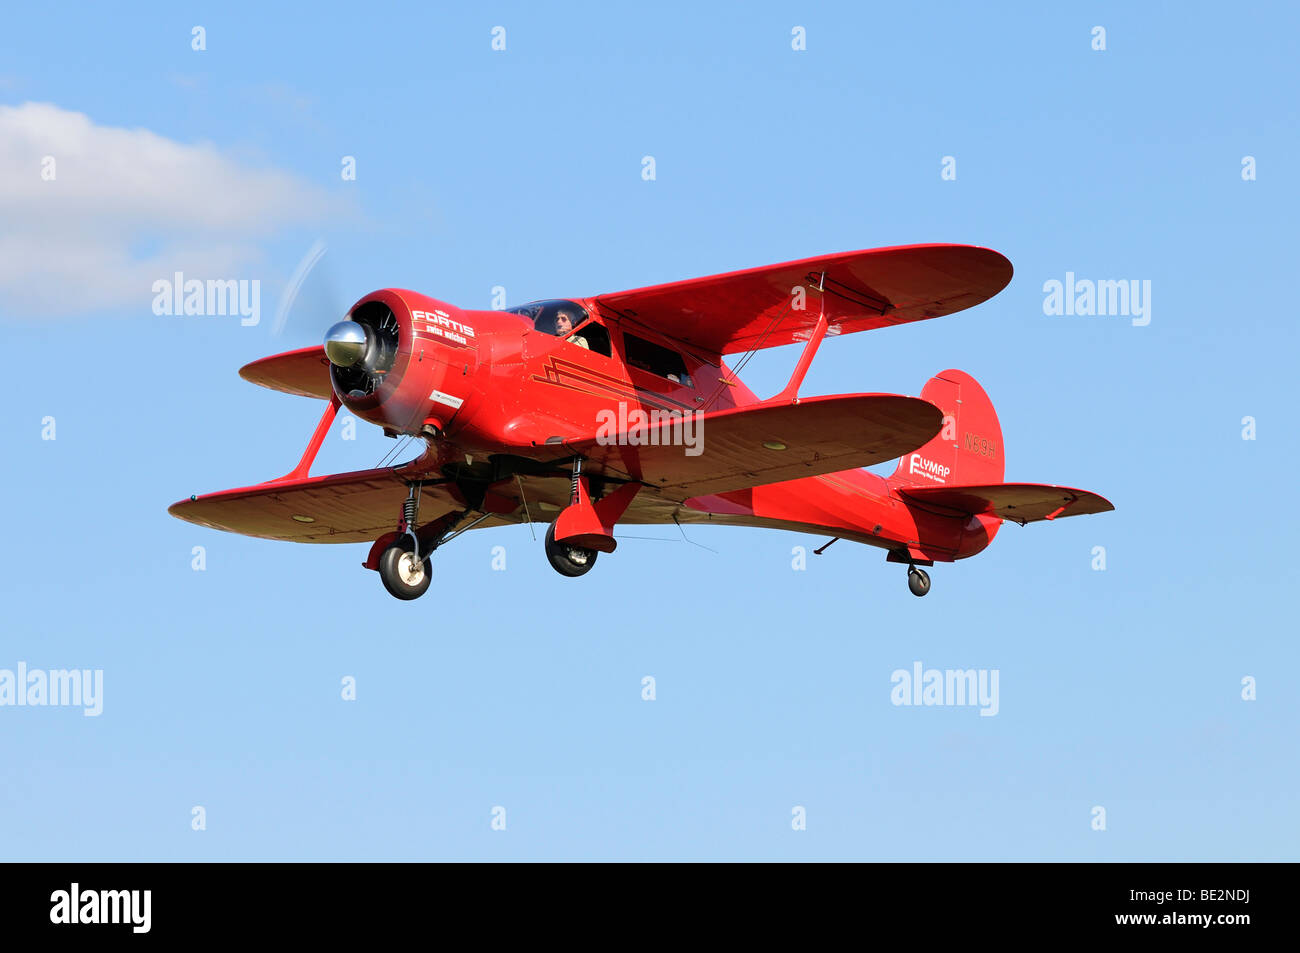 American Beechcraft Model 17 Staggerwing biplane, Europe's largest meeting of vintage planes at Hahnweide, Kirchheim - Stock Image